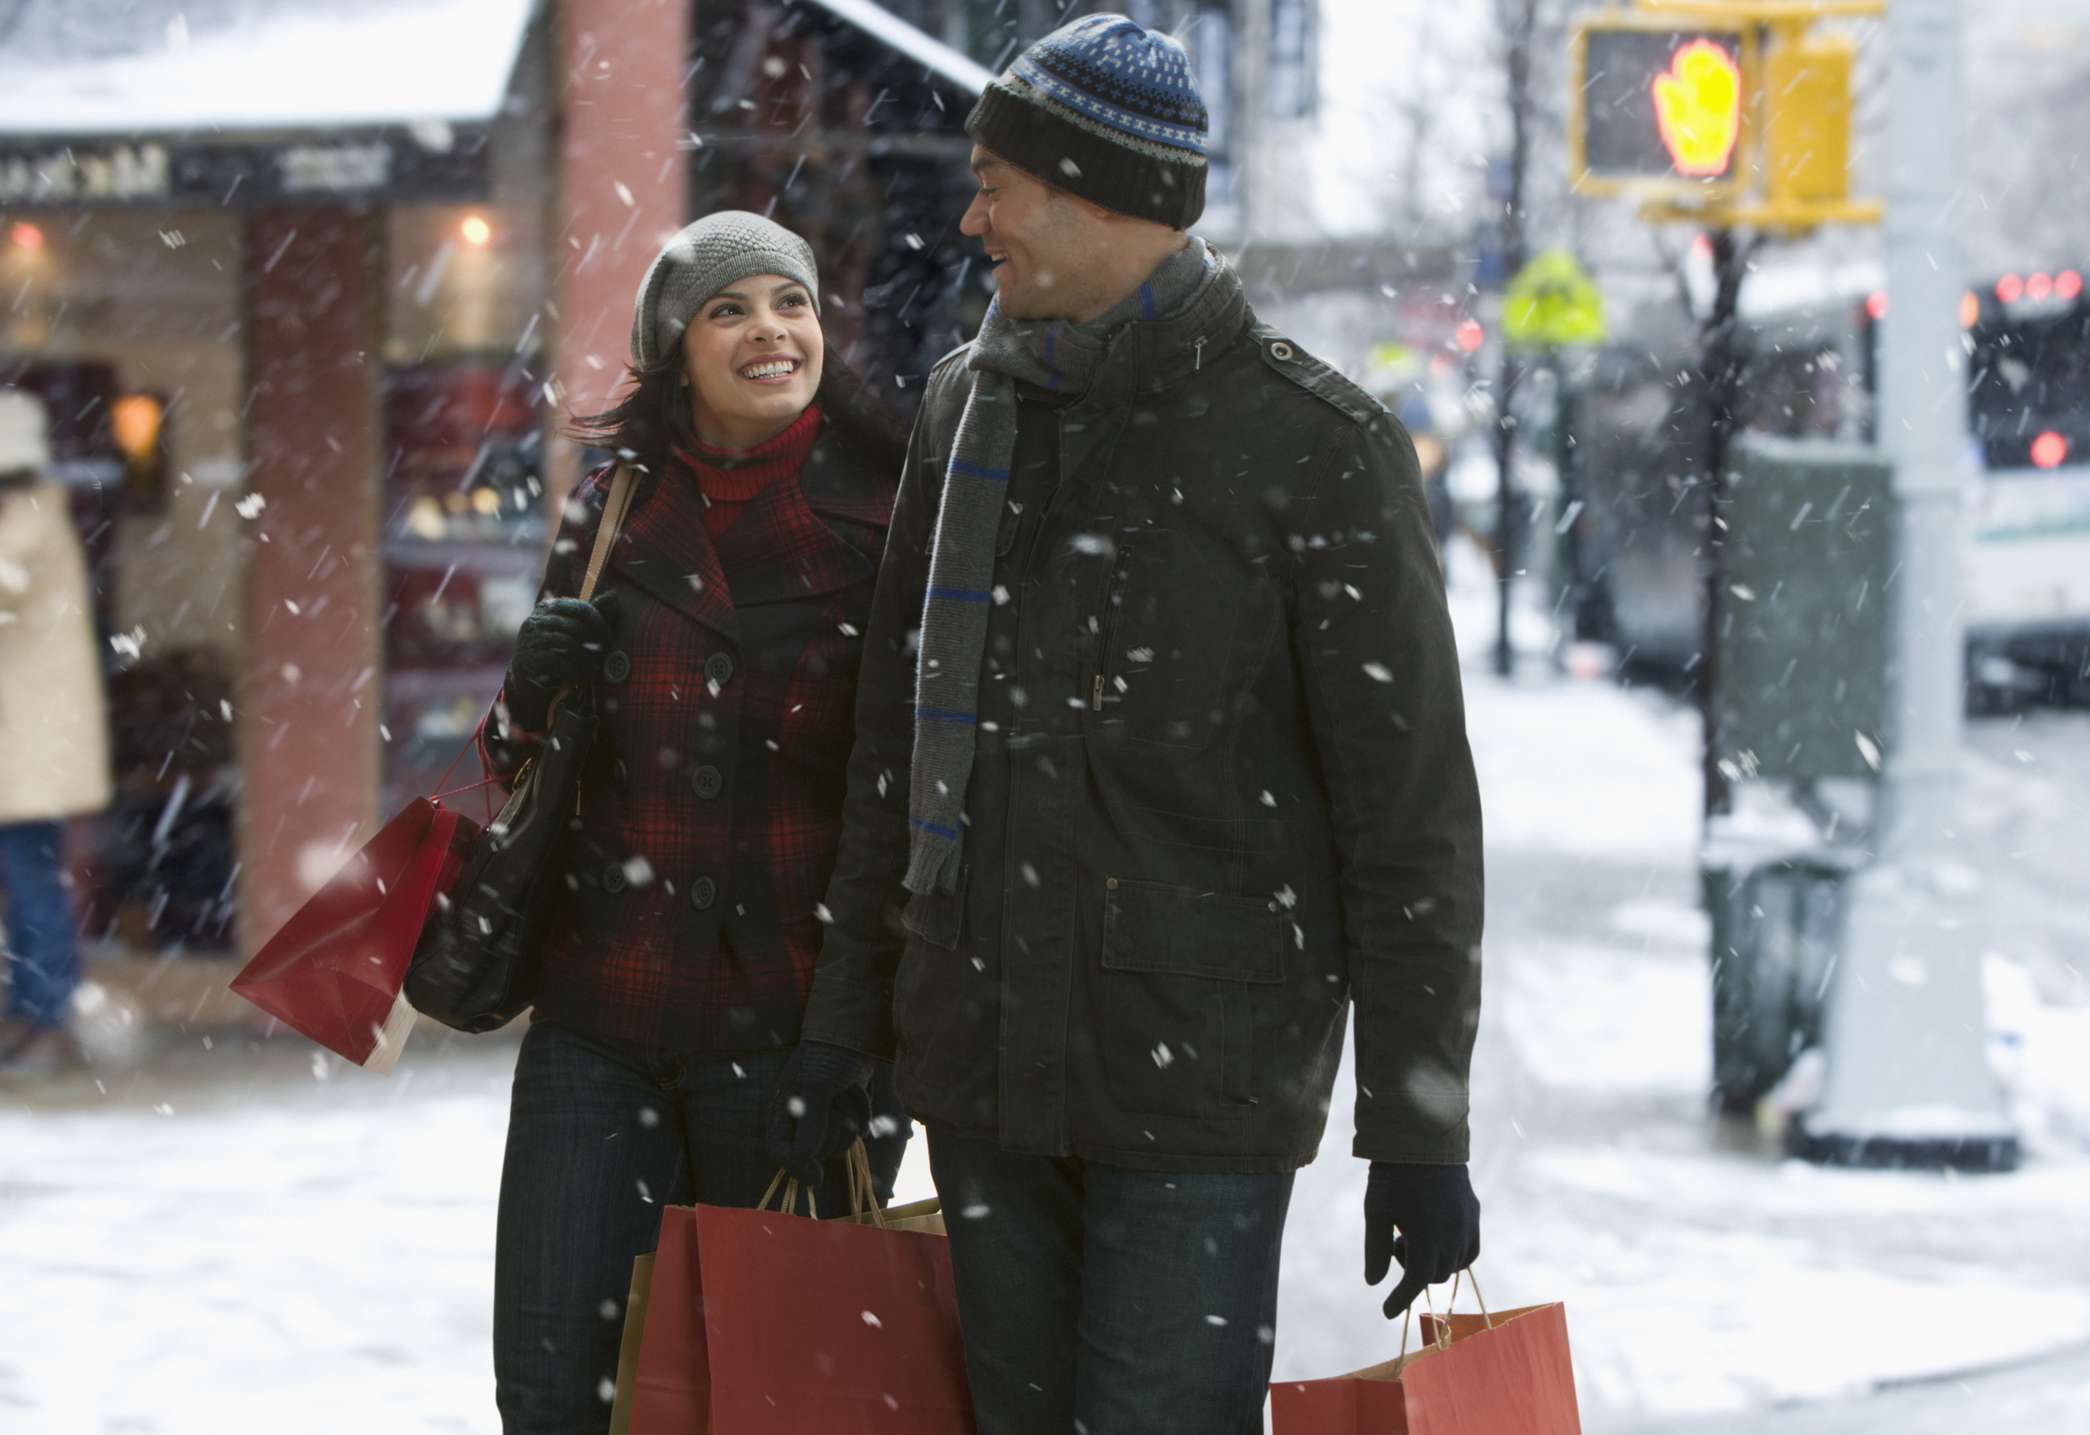 couple shopping in cold weather